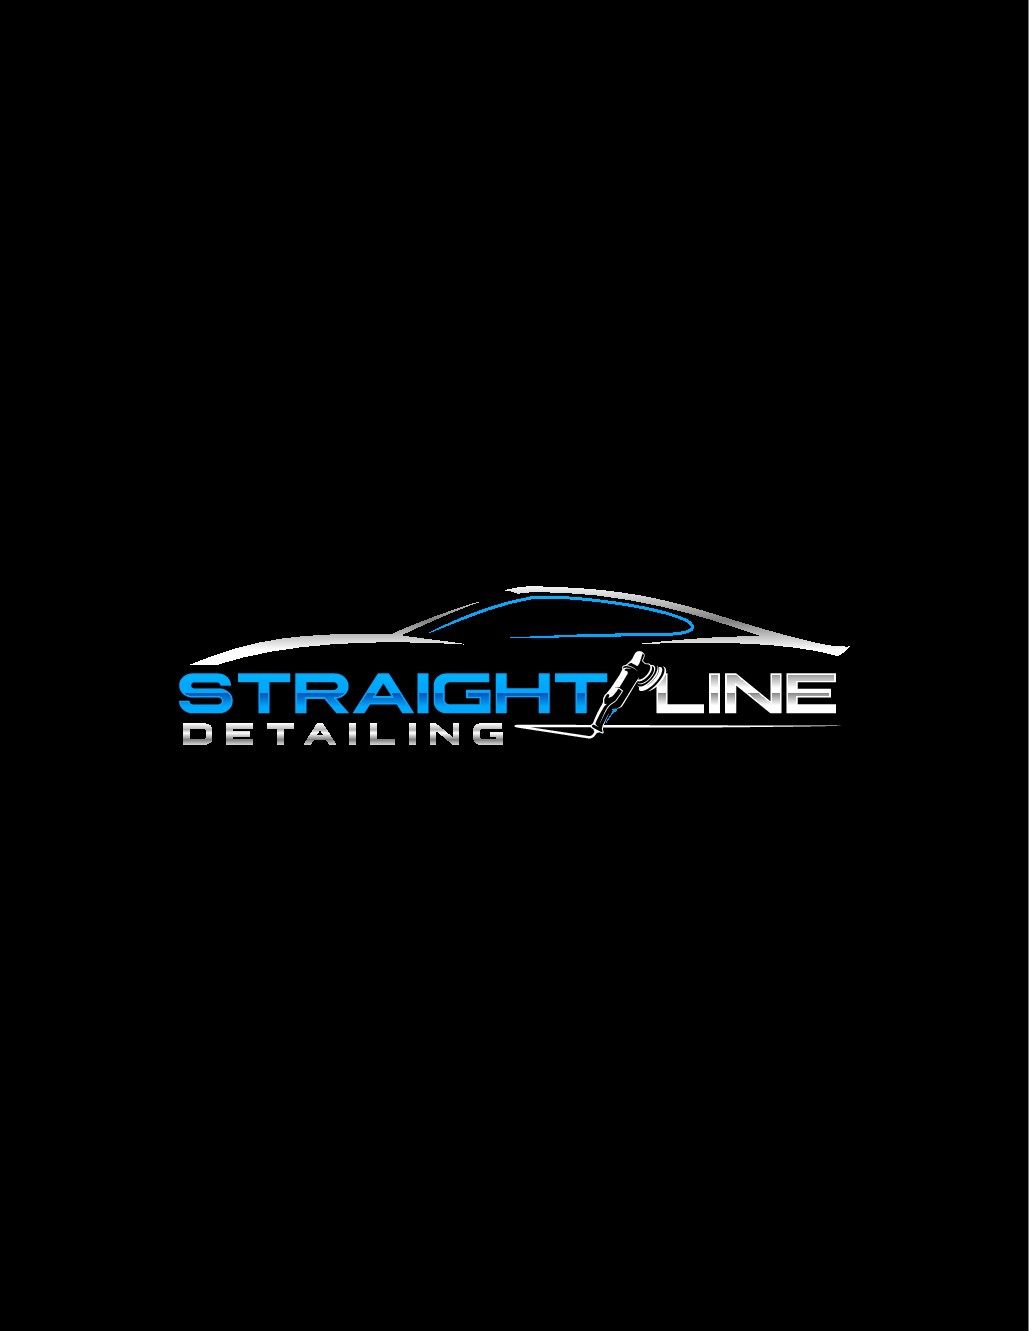 Straight Line Detailing needs a creative logo that pops!